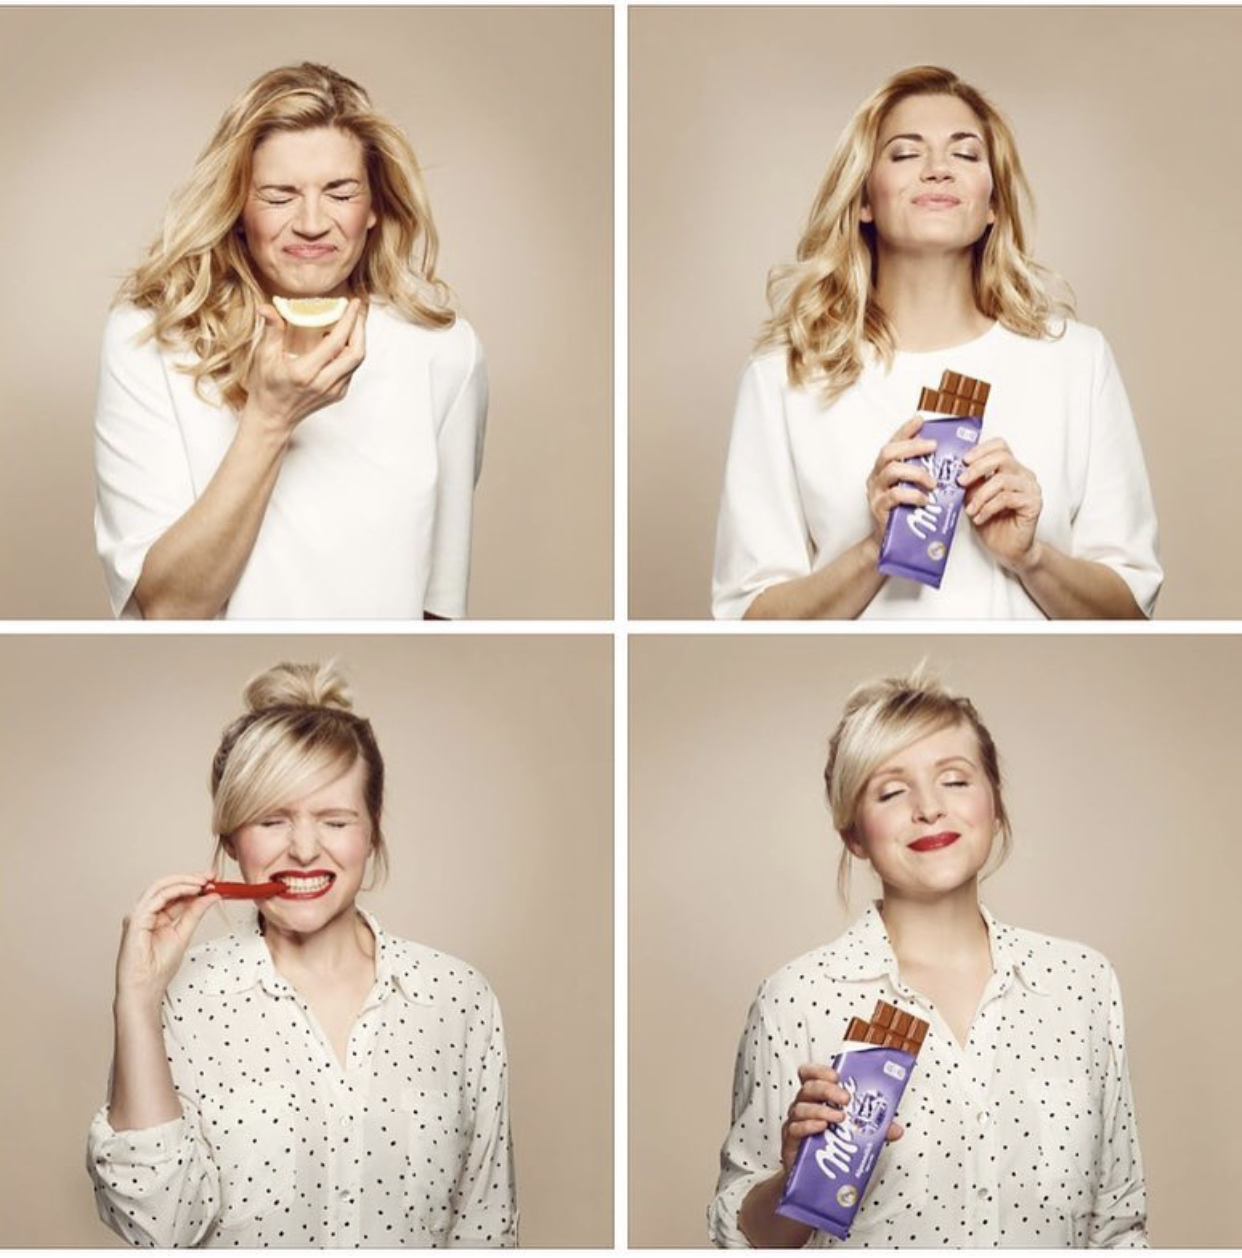 Commercial Shoot Milka chocolate @ Luna Studios Client Mondelēz International photo Miriam Lindthaler